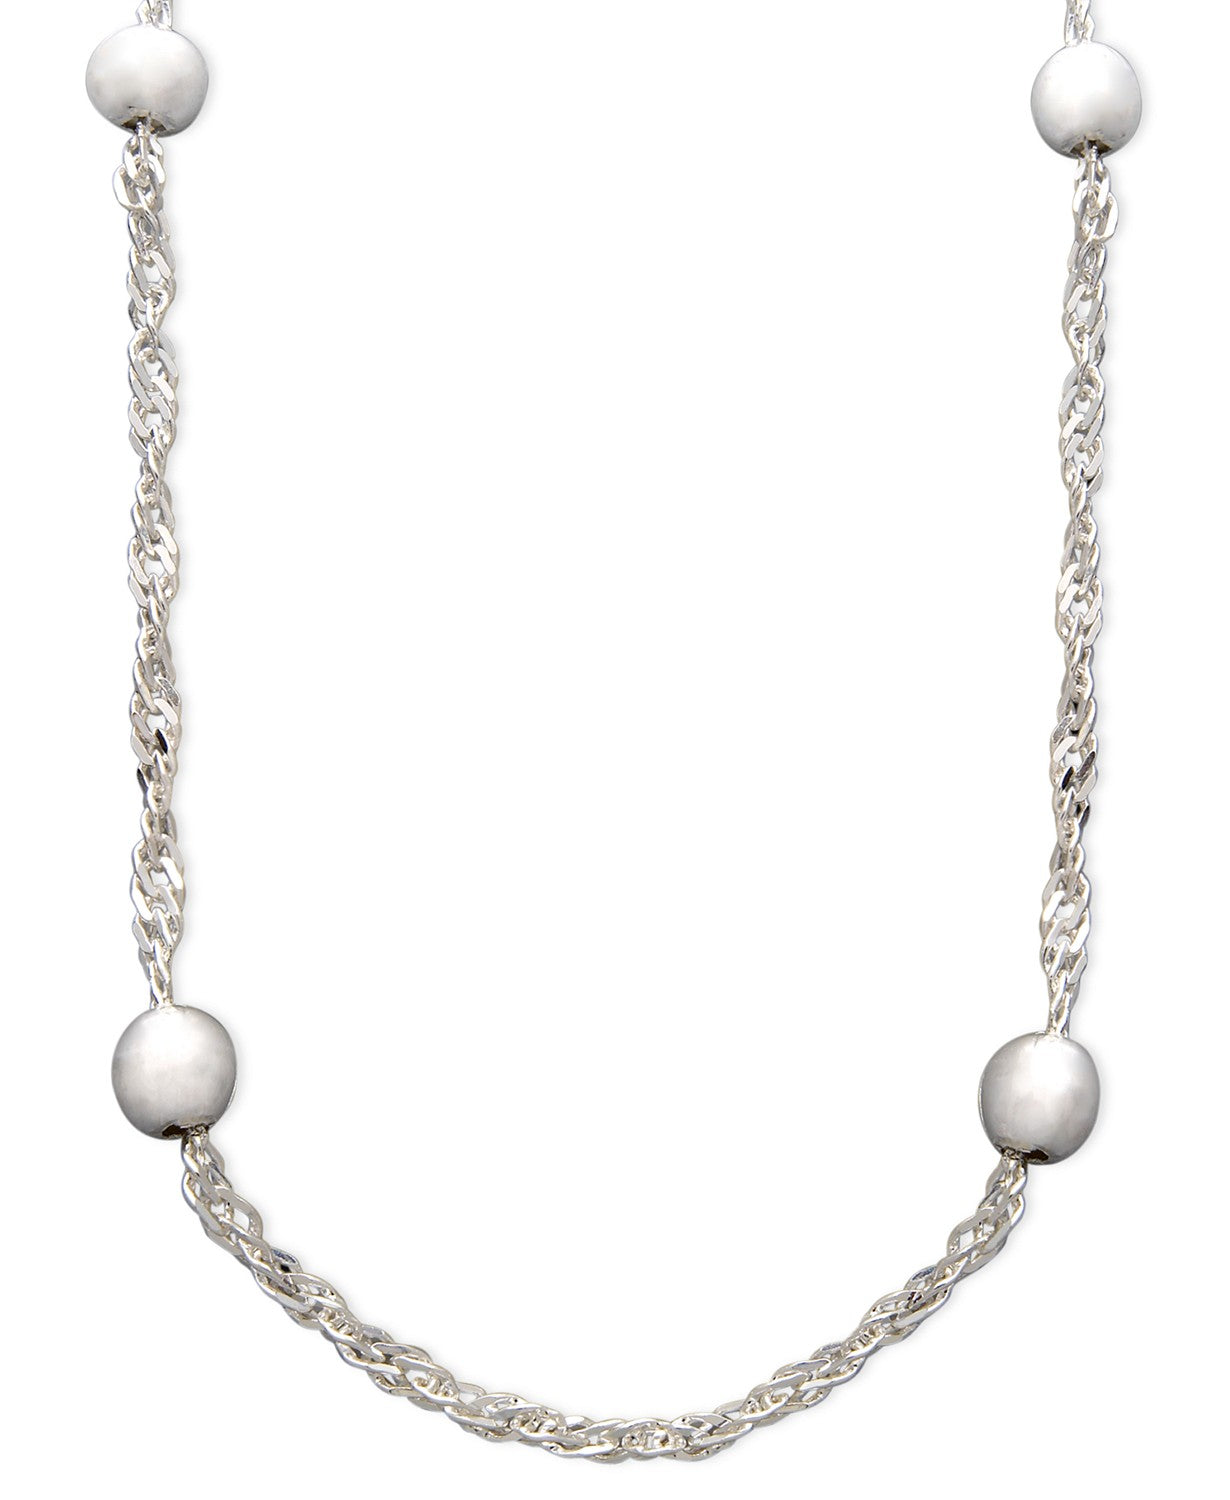 Giani Bernini Sterling Silver Necklace, 18 Inch Bead Chain